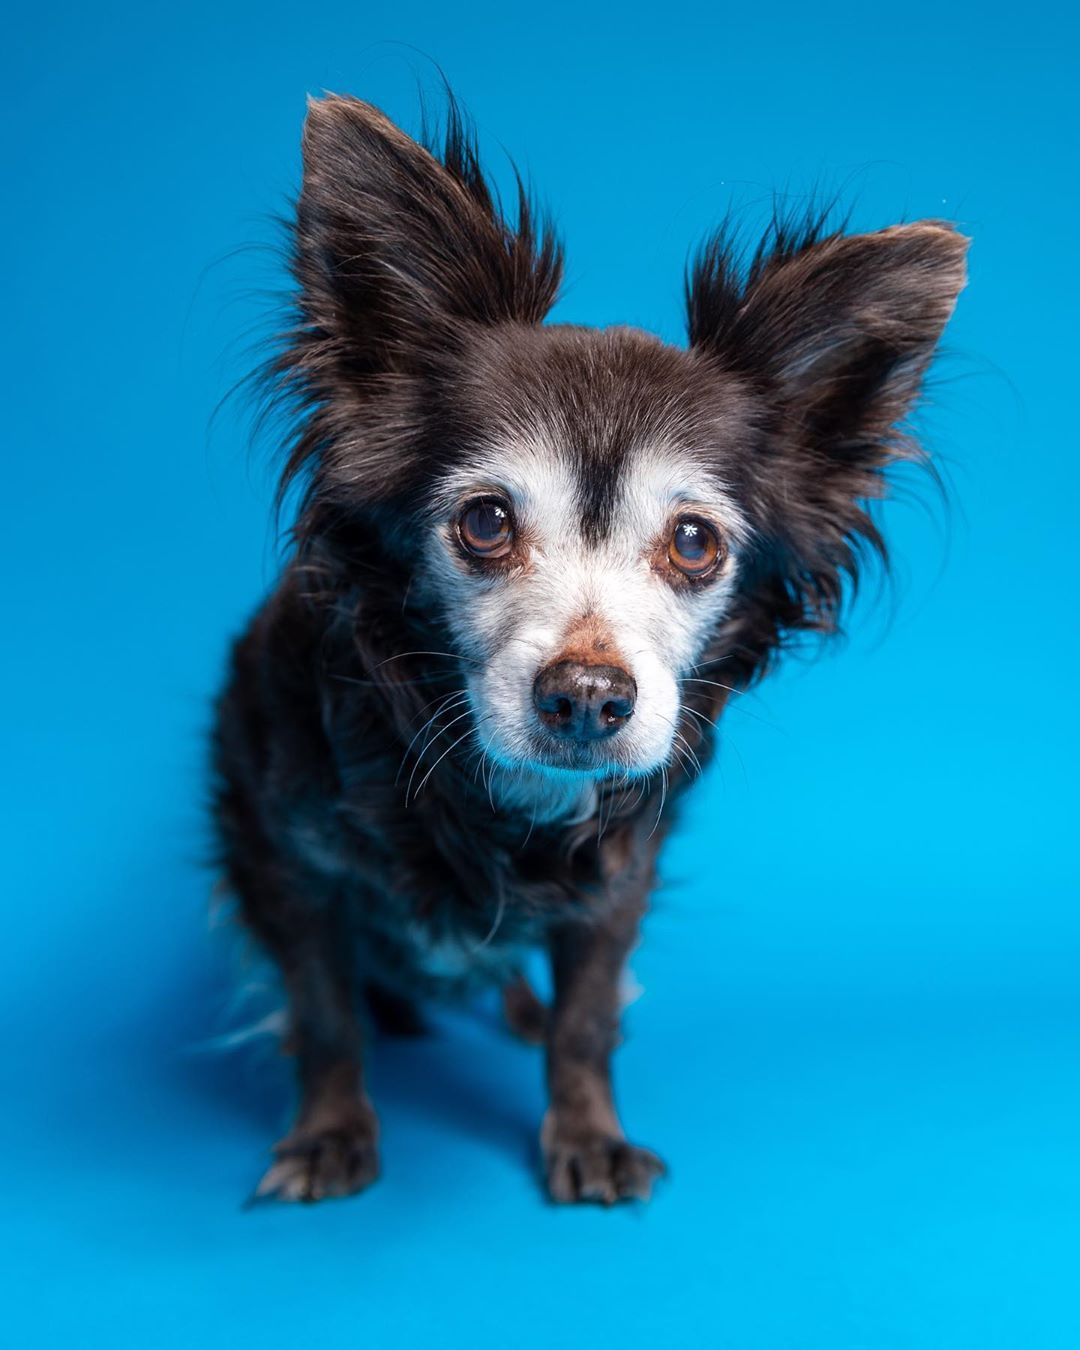 Flea The 16 5yr Old Long Haired Chihuahua Mix Shes The Biggest